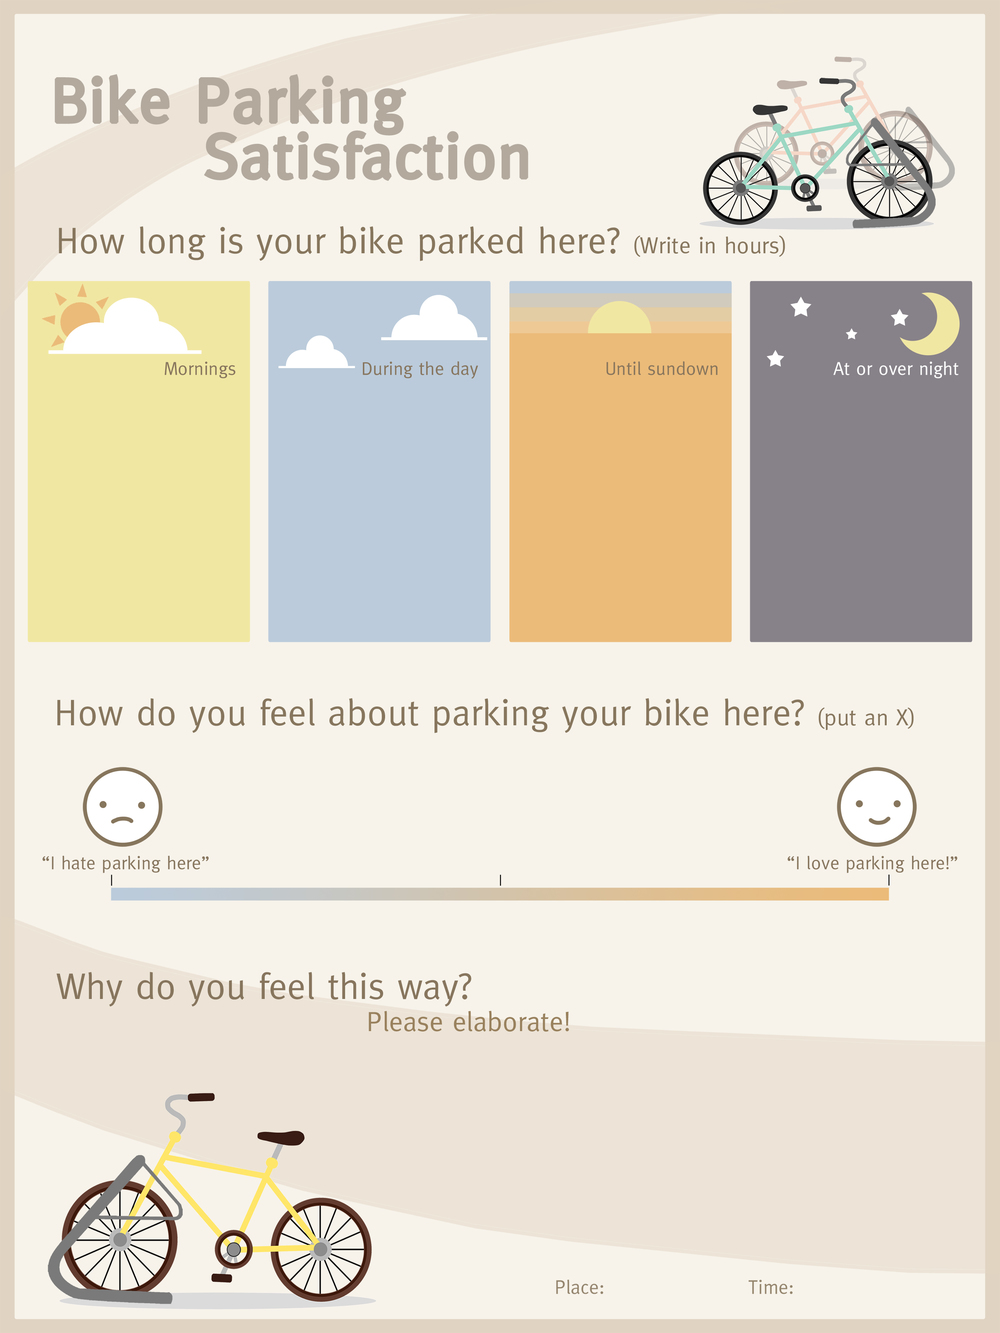 Biker Satisfaction Survey